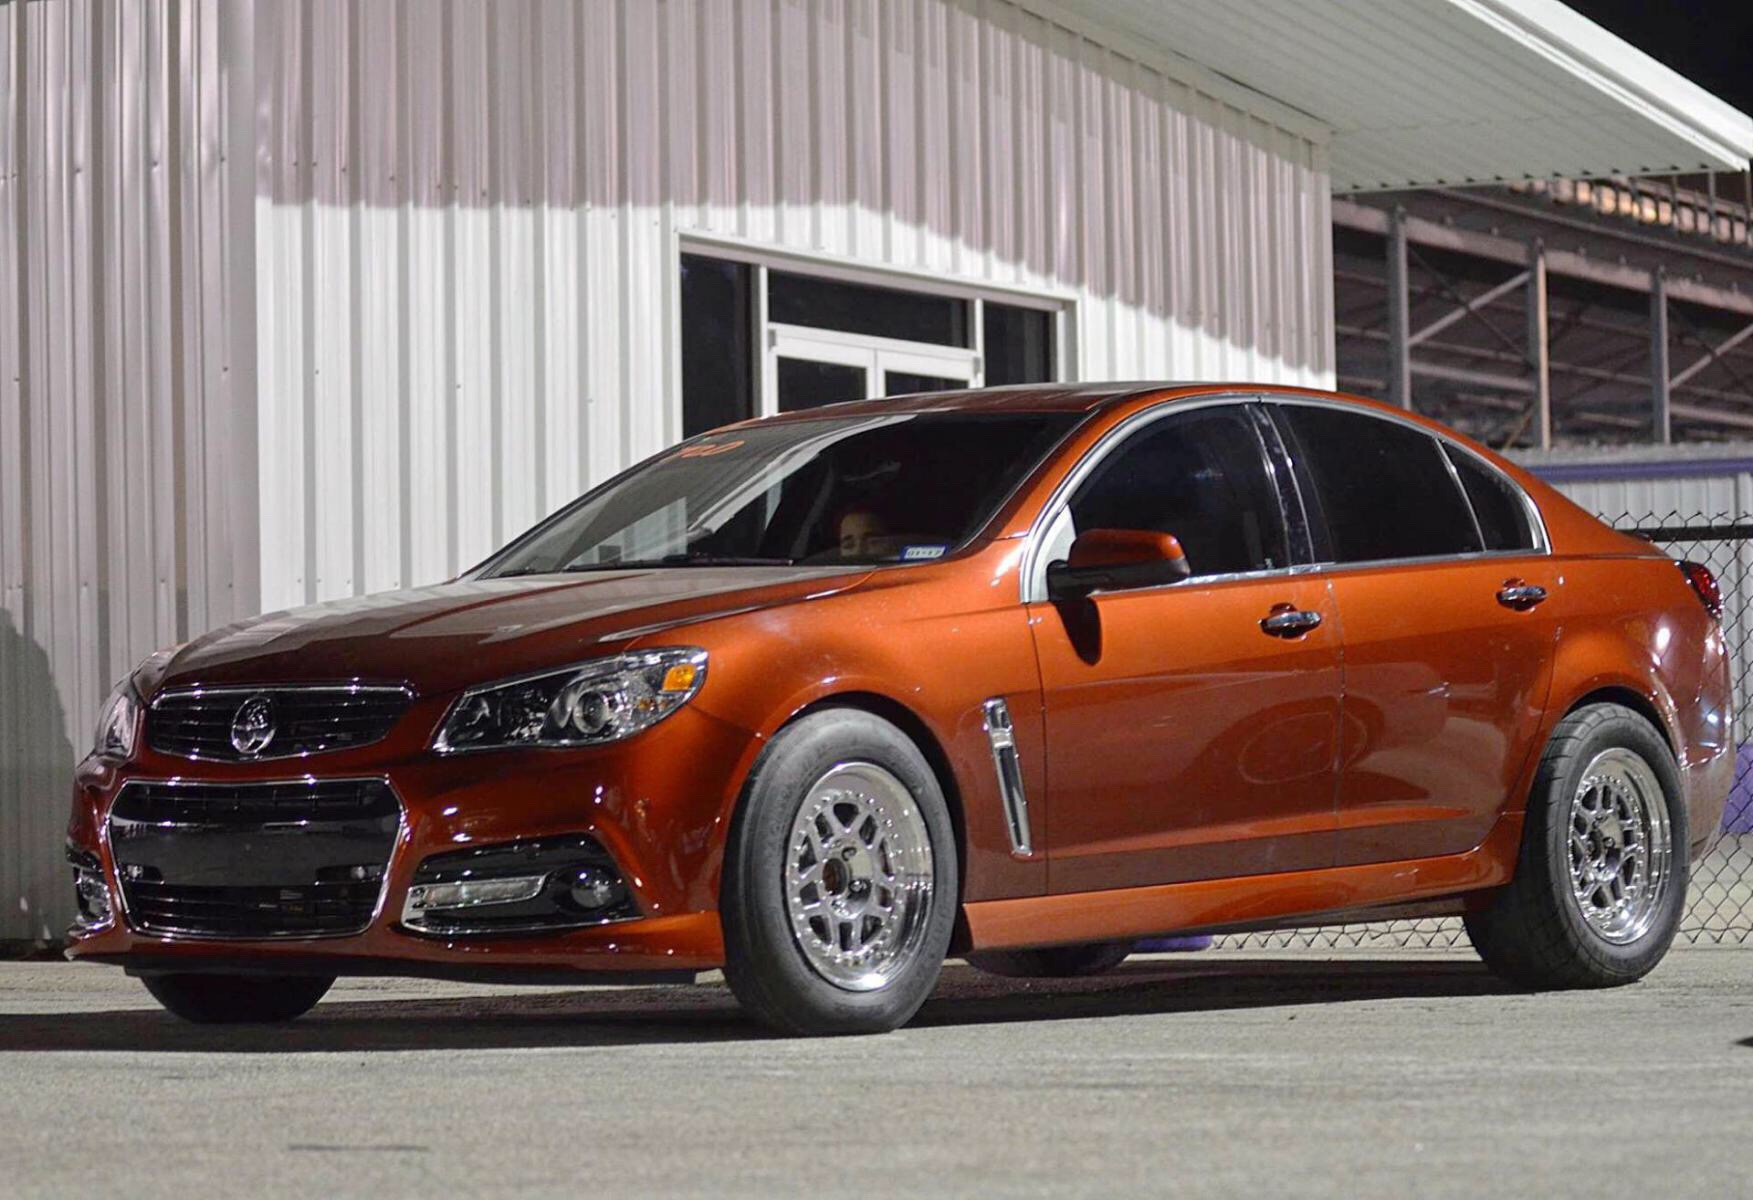 Best drag car Wheels - Tires - Stance. - Chevy SS Forum